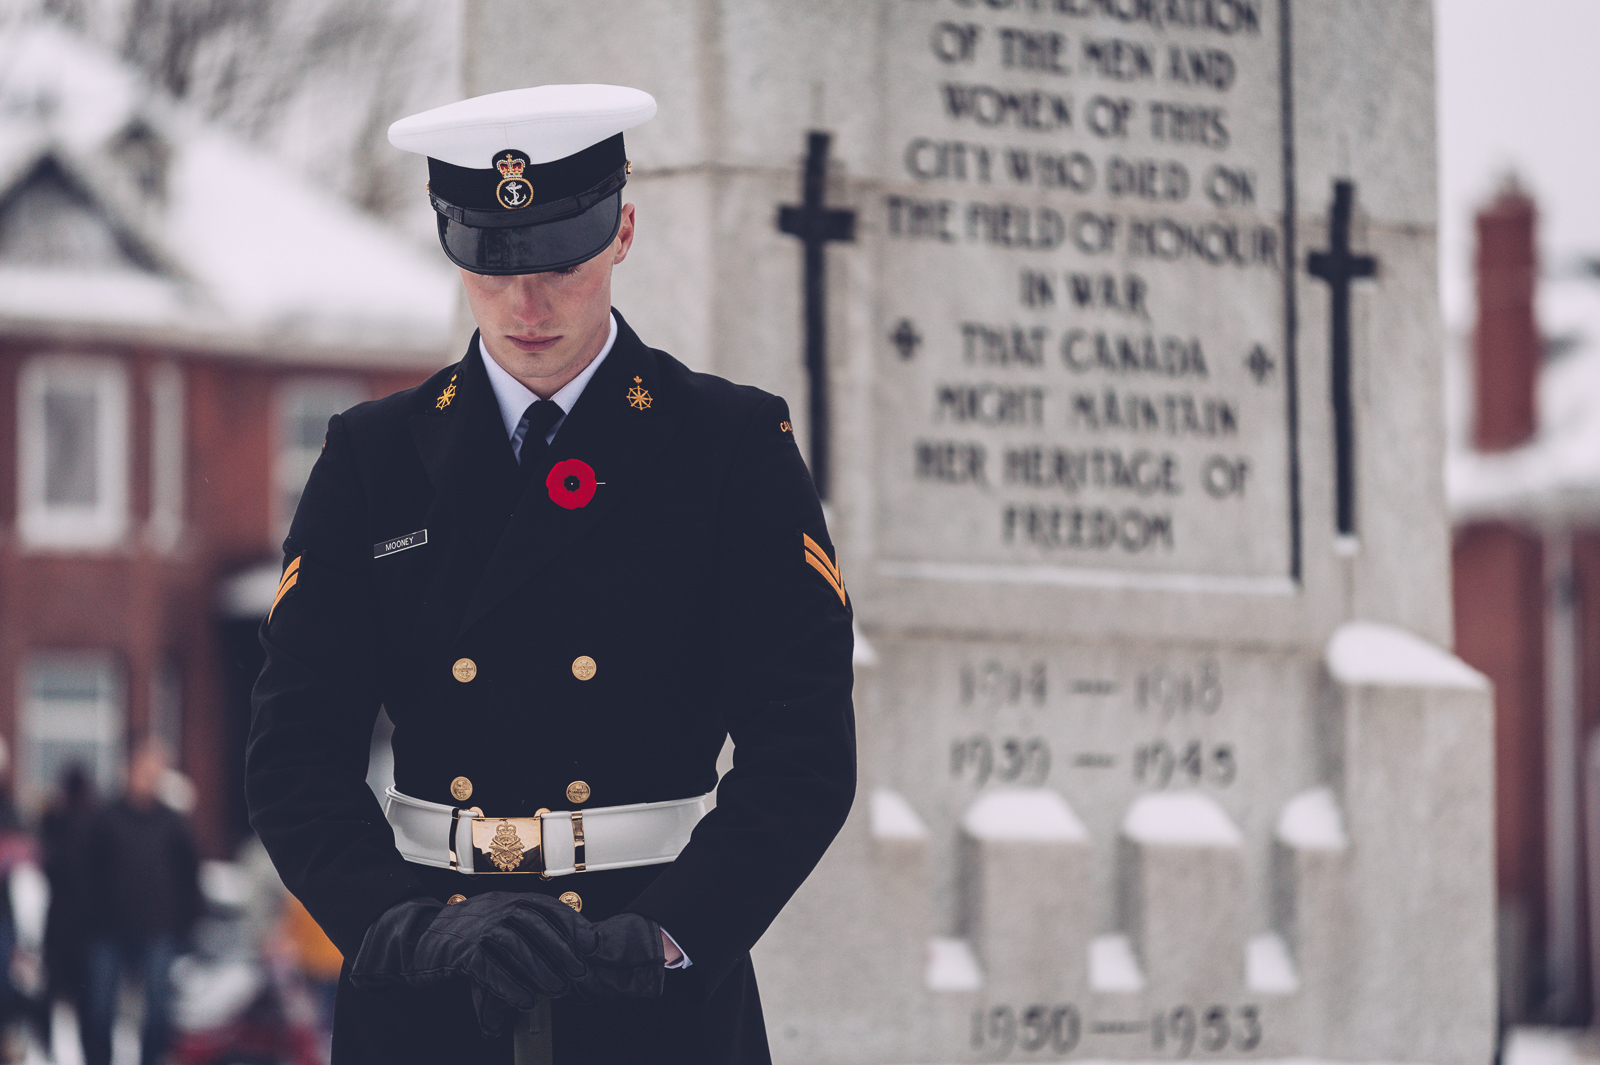 remembrance_day_2017_blog4.jpg